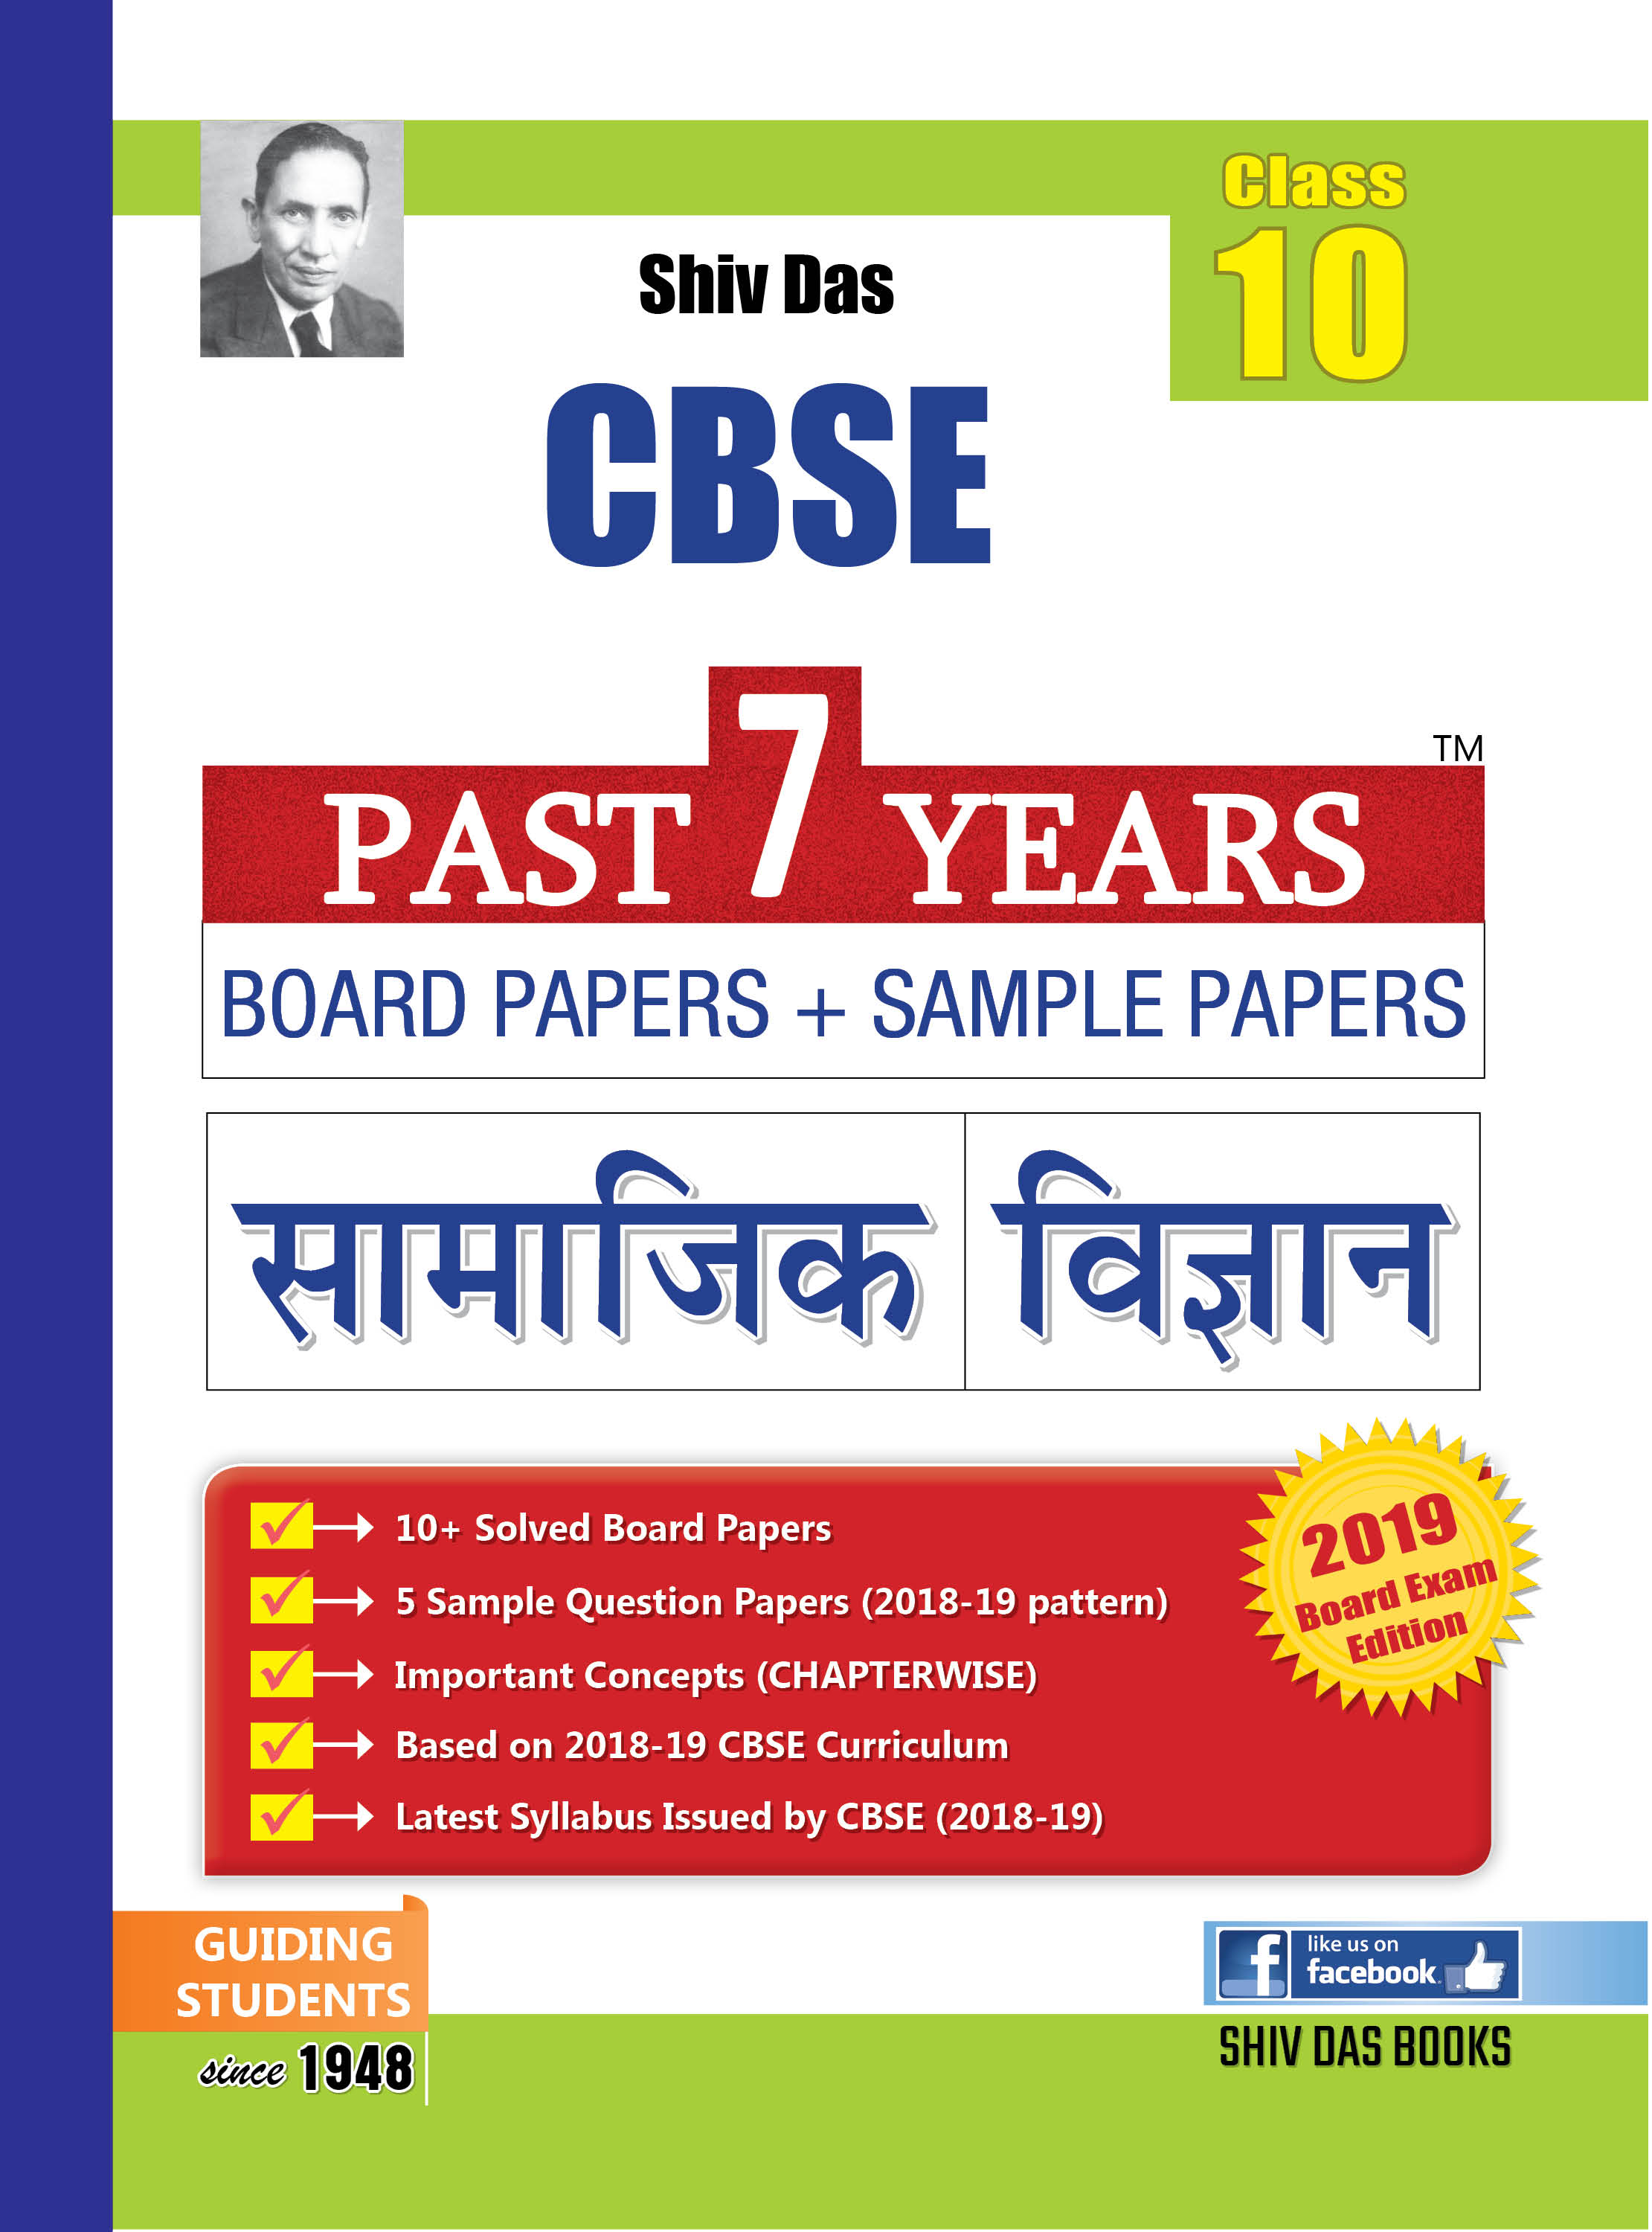 CBSE Past 7 Years Solved Board Papers+Sample Papers for Class 10 Samajik Vigyan (2019 Board Exam Edition)